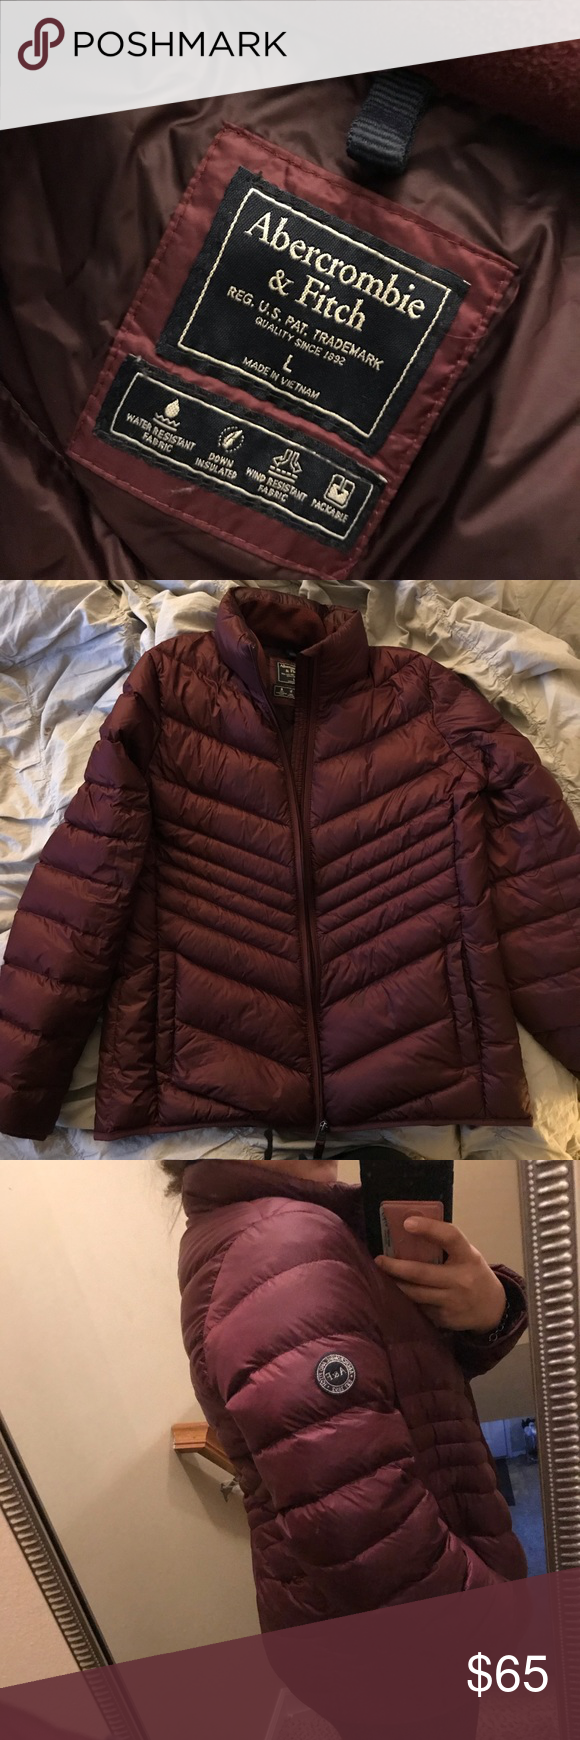 Abercrombie Fitch Lightweight Puffer Jacket Lightweight Super Warm And Cozy Packable And Comes With I Abercrombie And Fitch Jackets Clothes Design Fashion [ 1740 x 580 Pixel ]